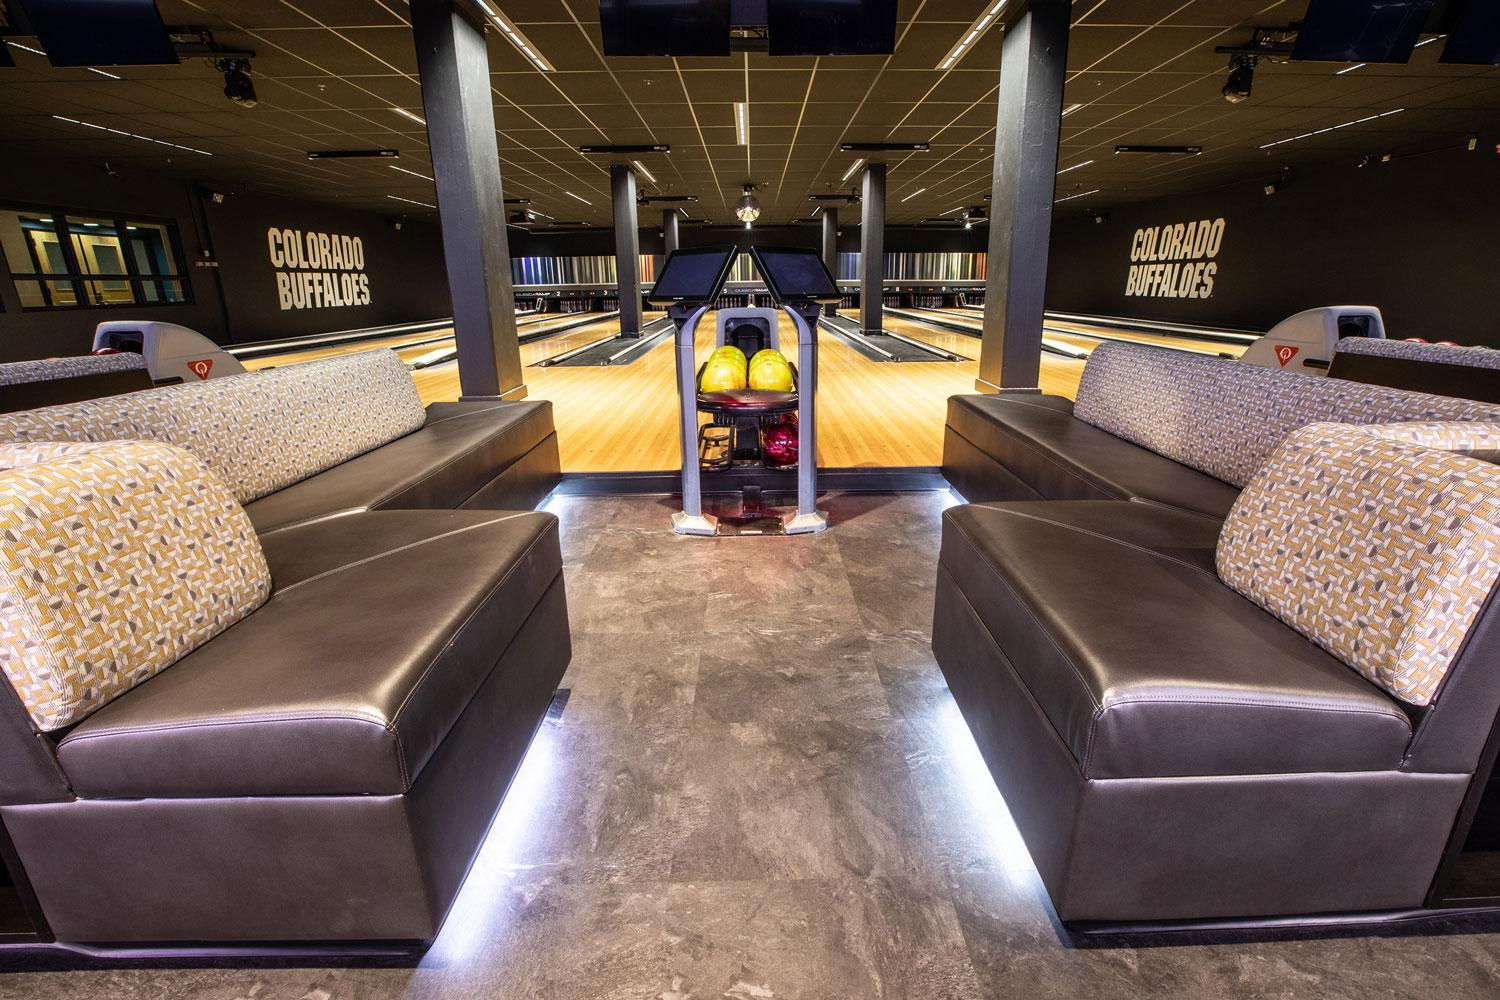 The Connection renovated bowling lanes